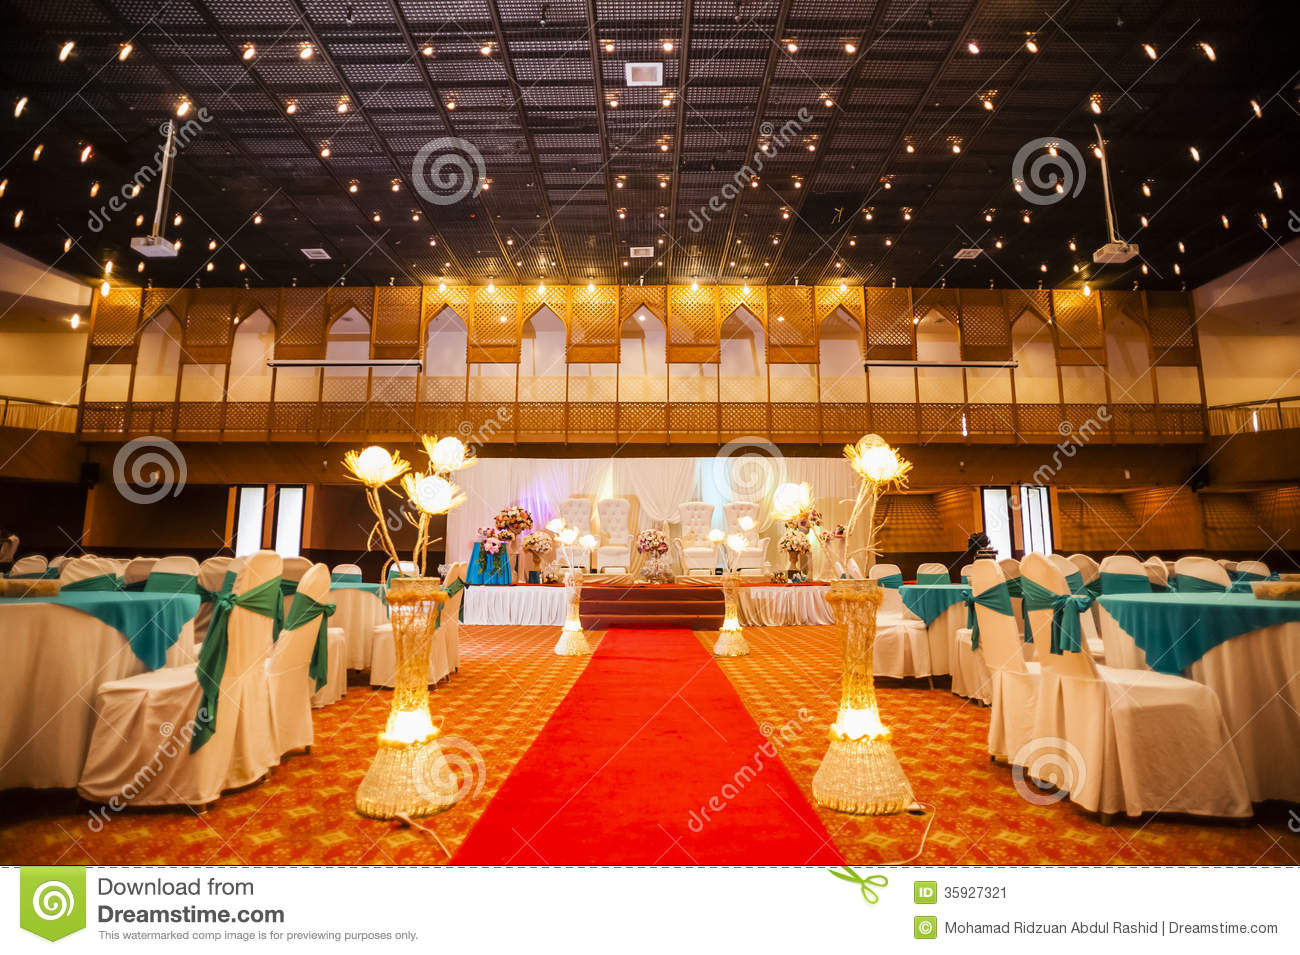 Wedding hall decoration stock image image of party for Hall decoration images